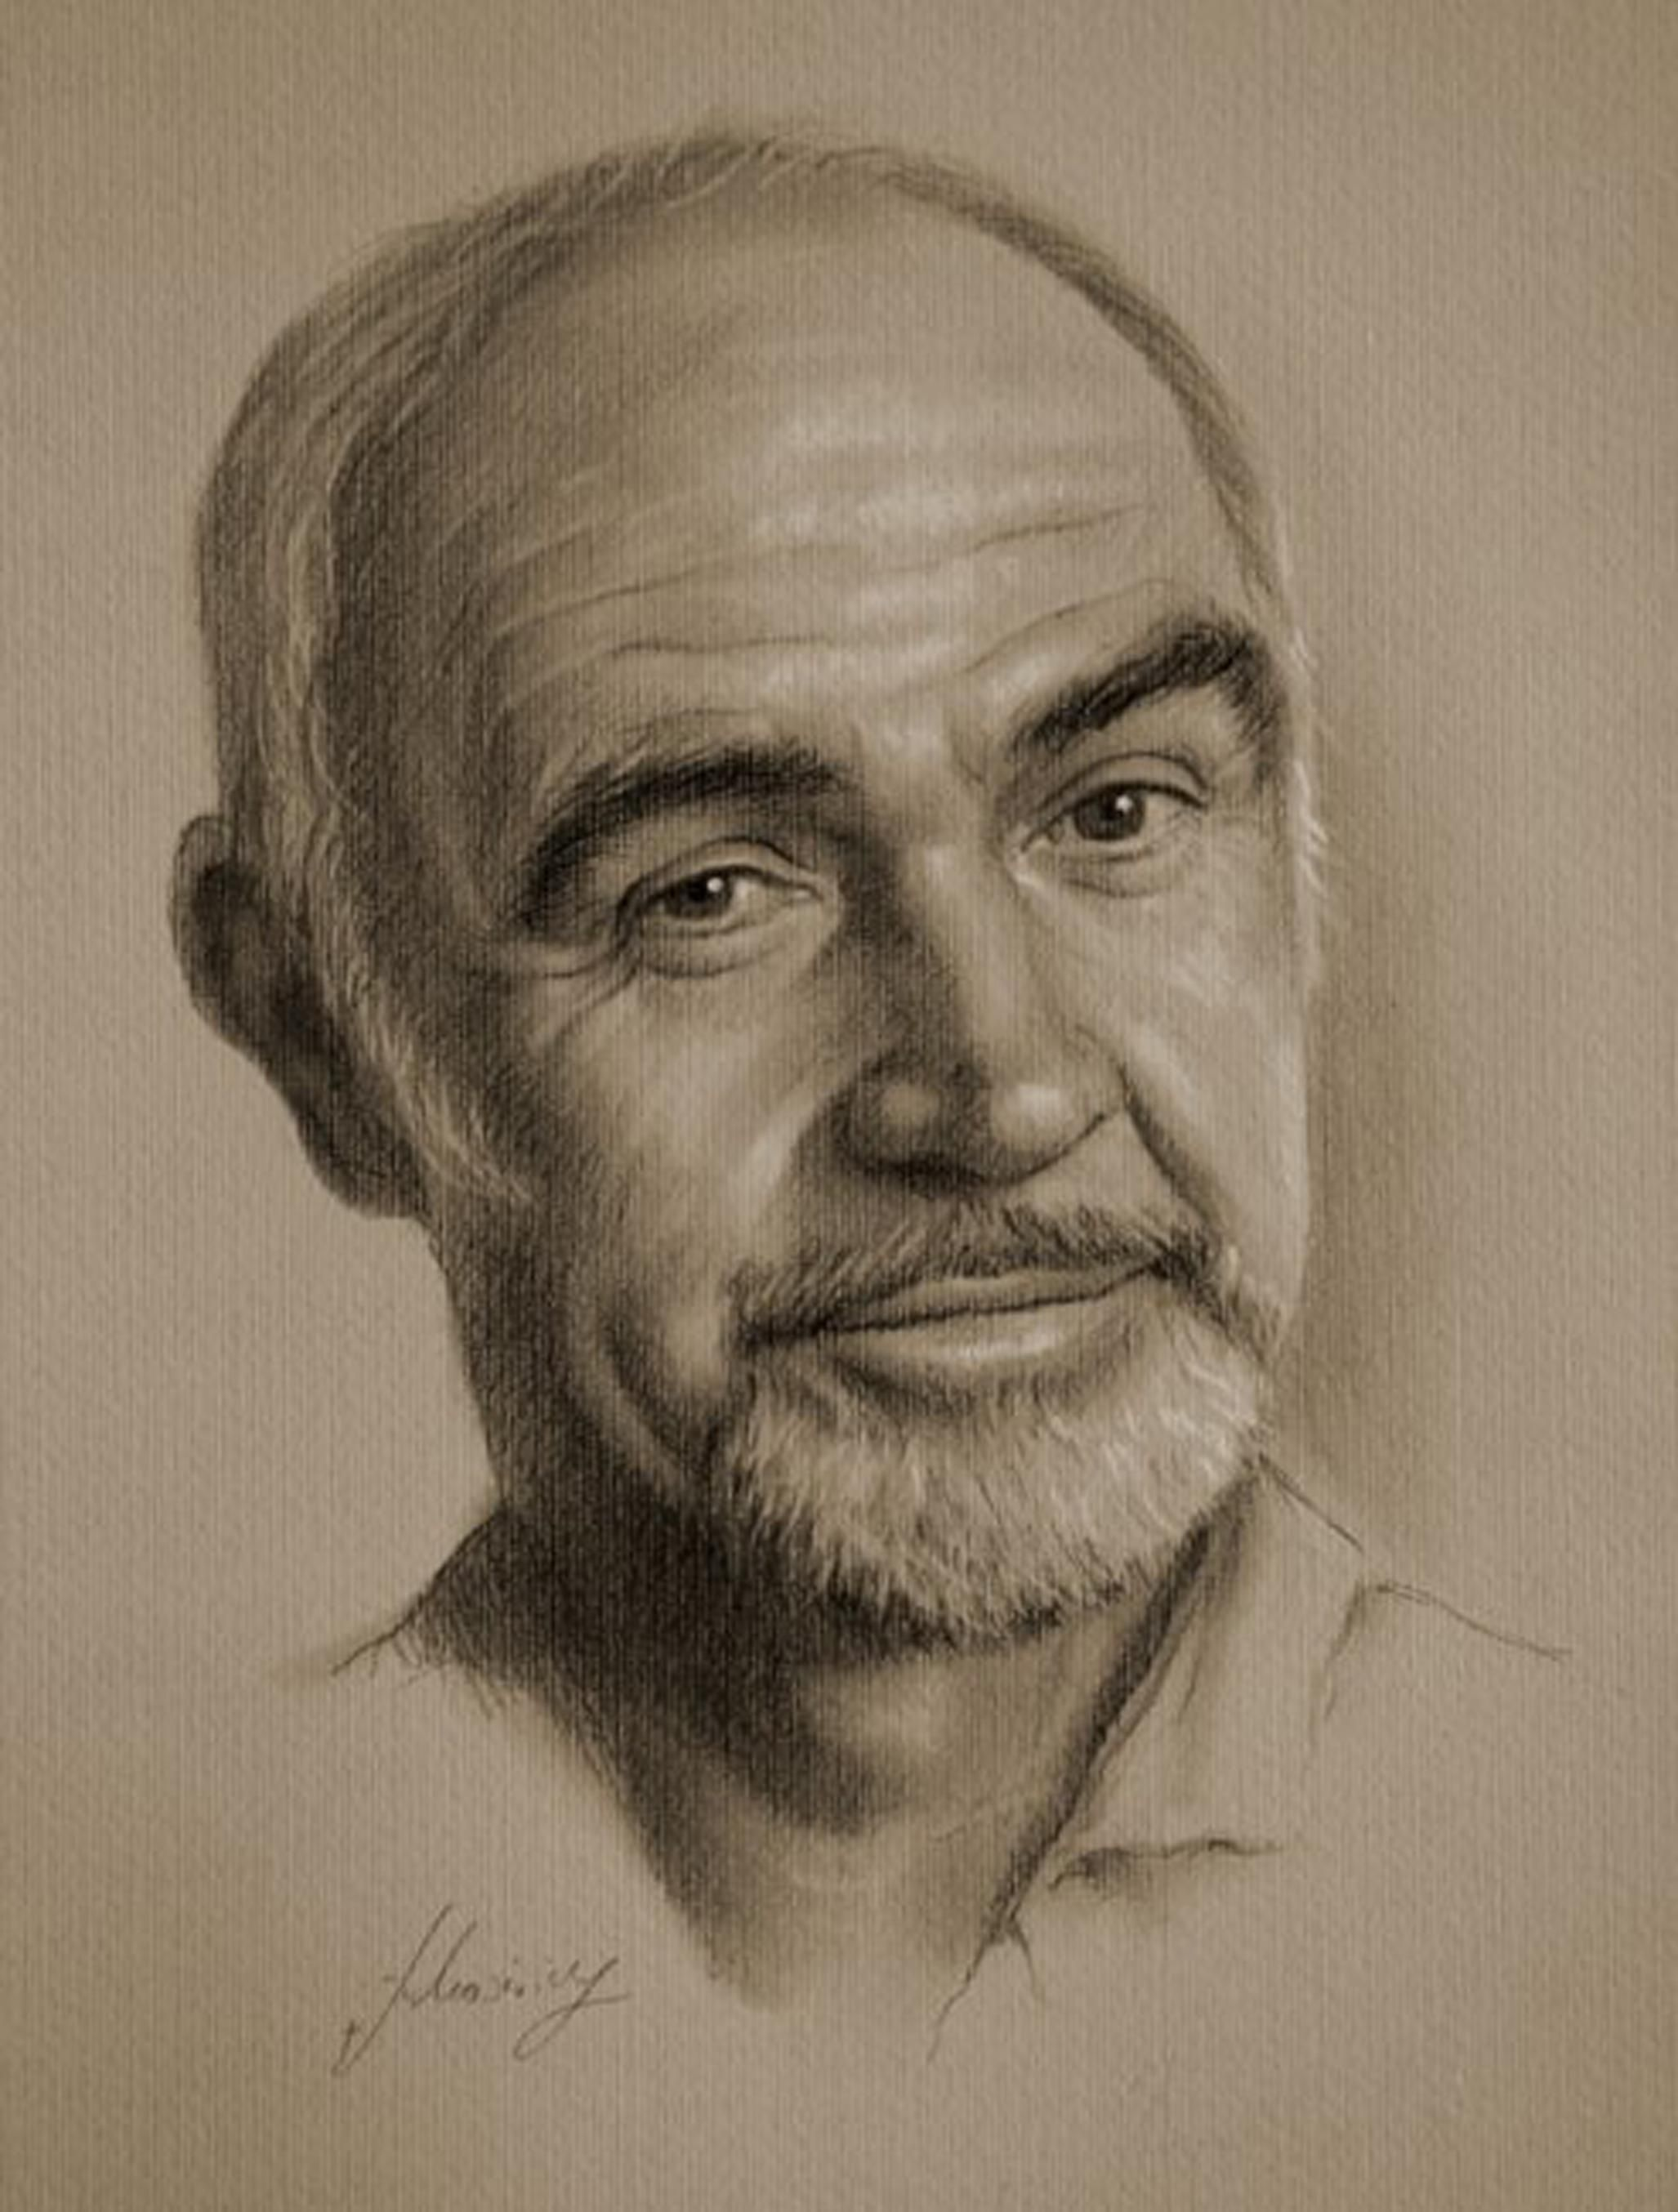 In pencil armed with graphite and beige paper pencil wielding polish artist krzysztof lukasiewicz portrays famous faces